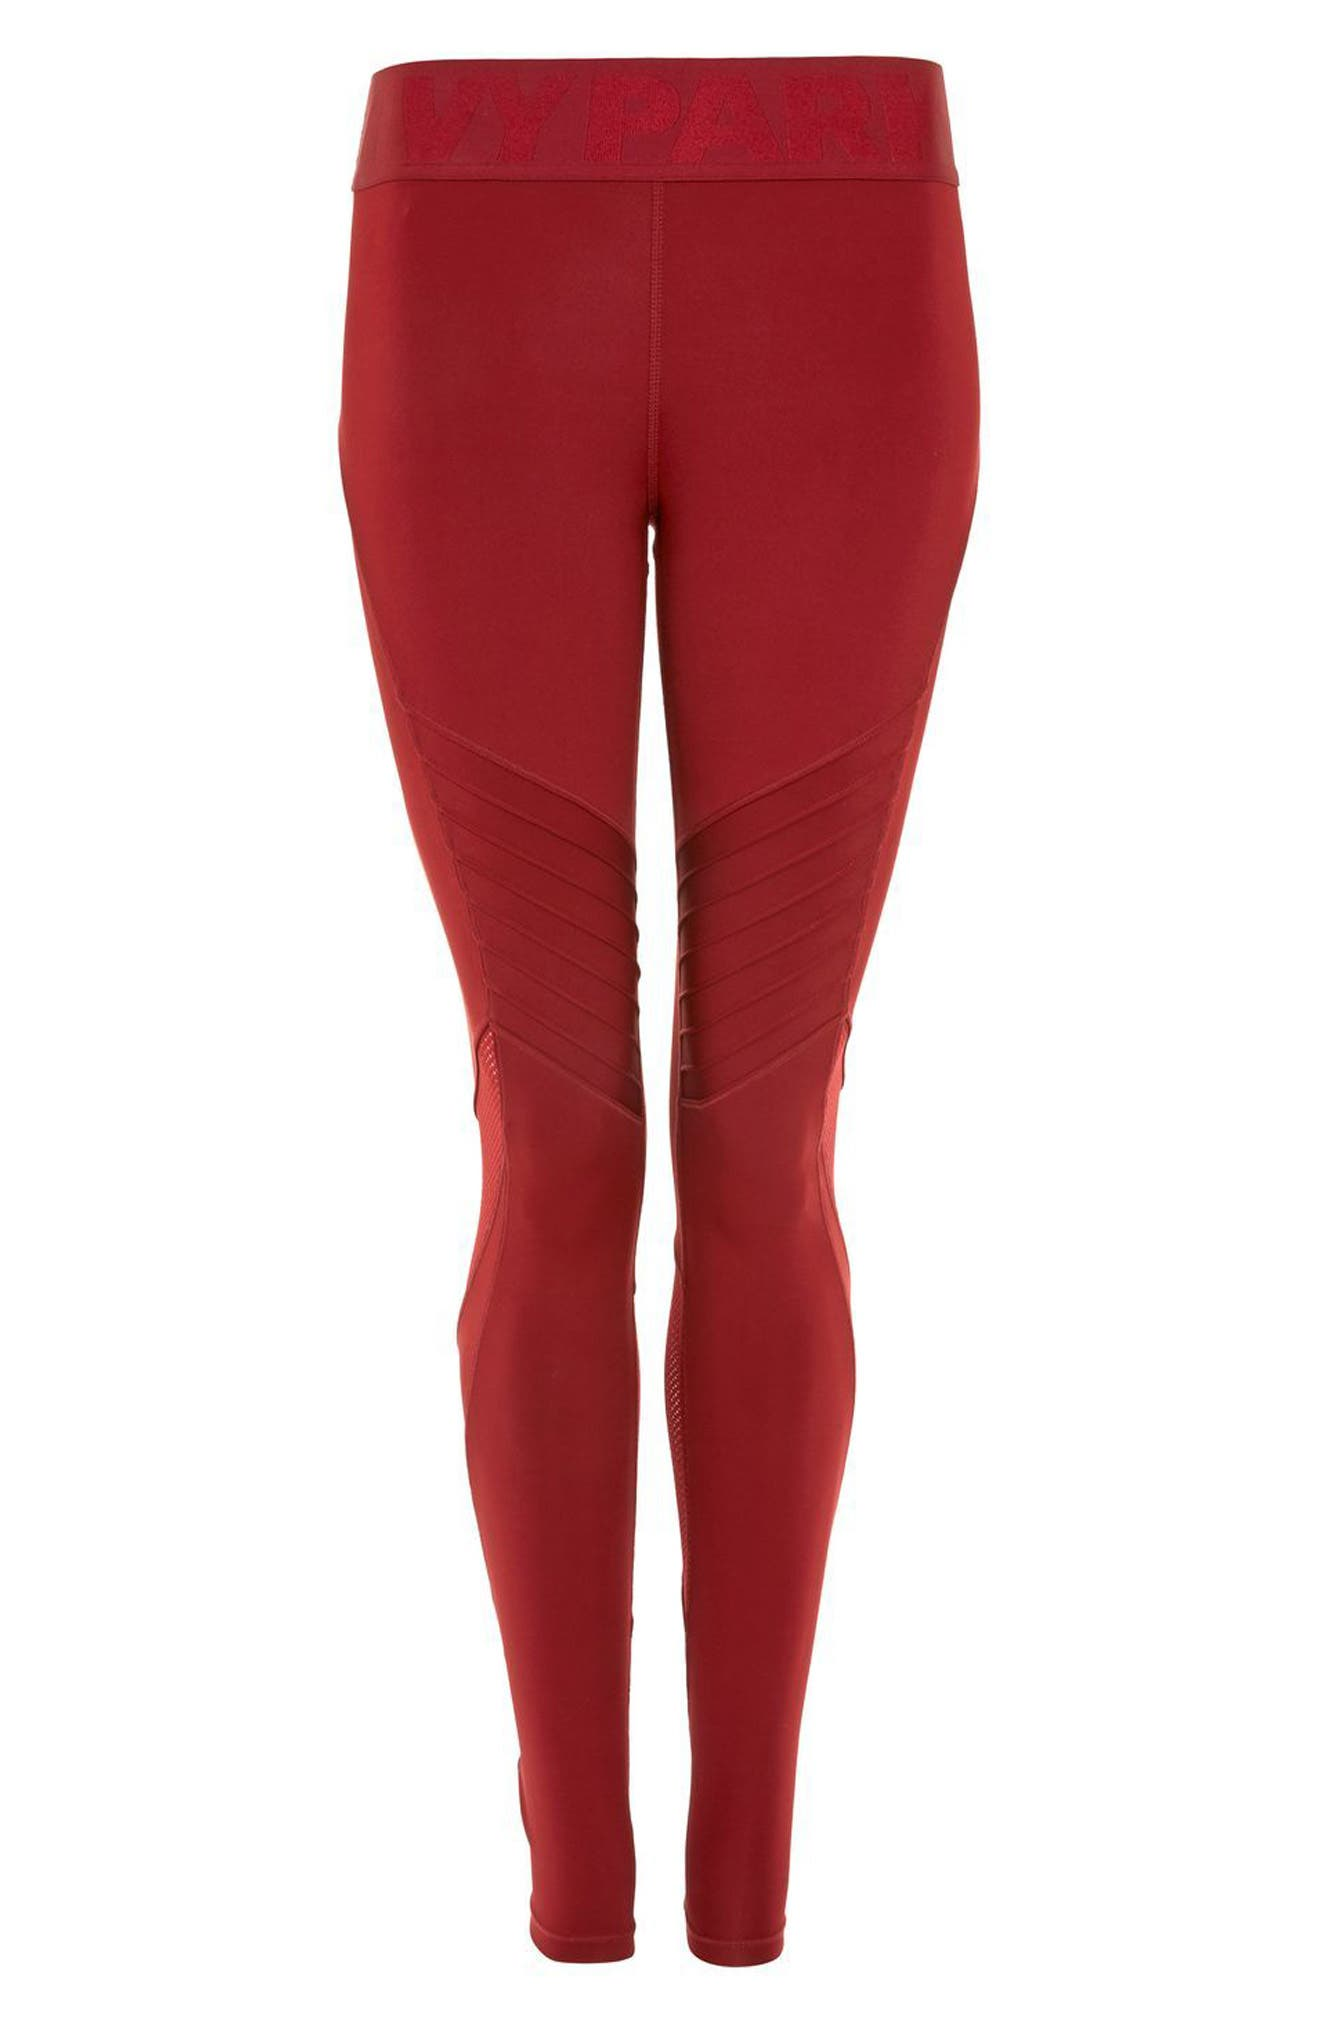 Pintuck Leggings,                             Alternate thumbnail 9, color,                             Russet